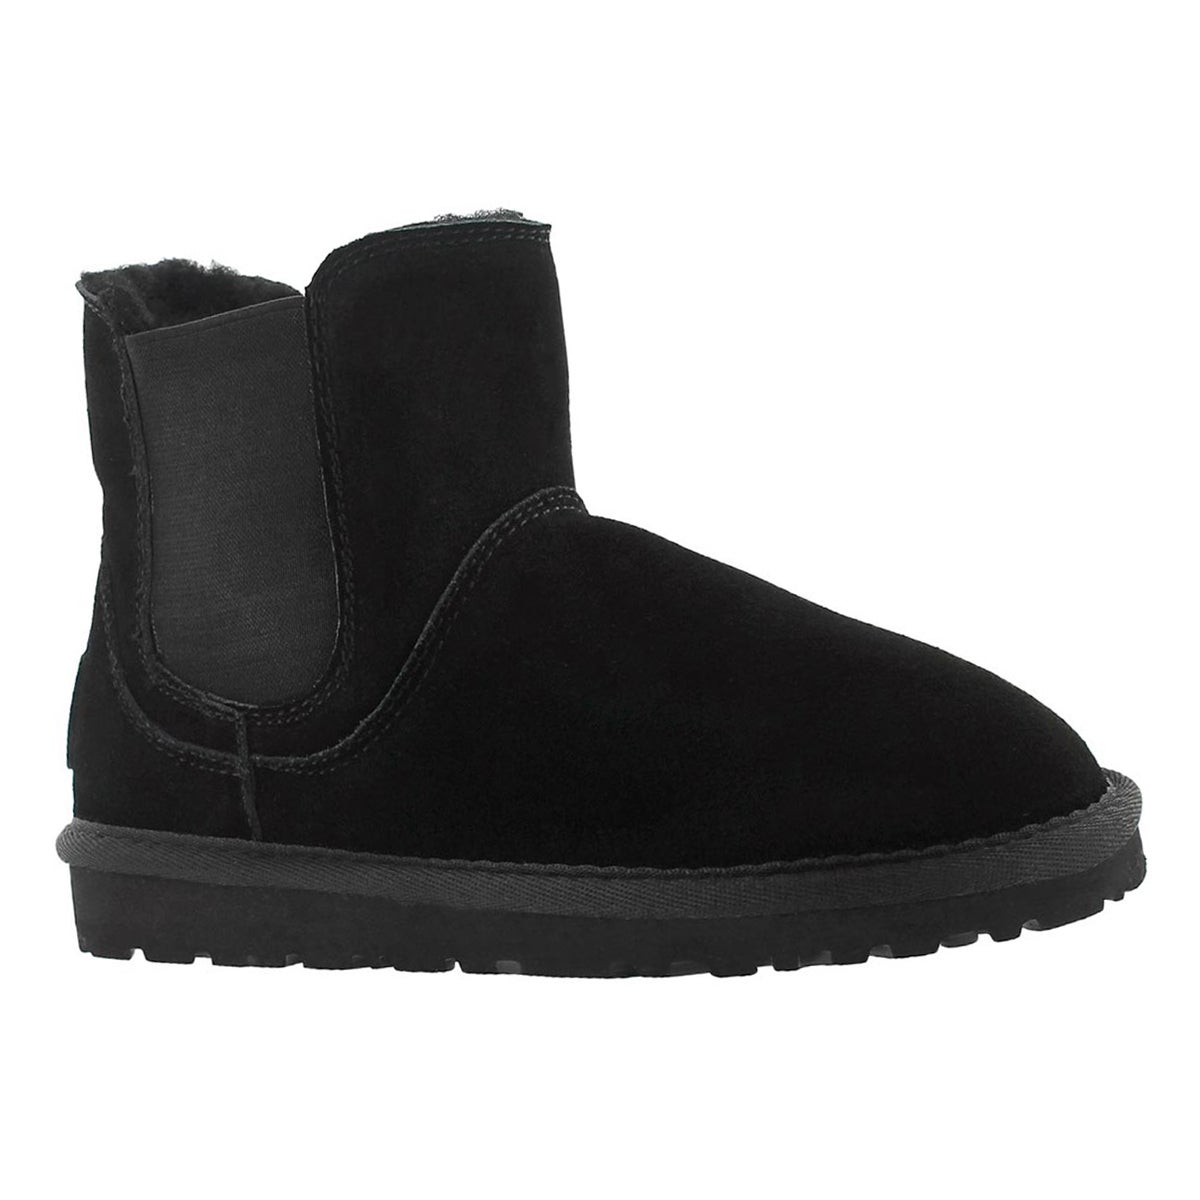 Girls' SMOCS 5 black chelsea suede boots